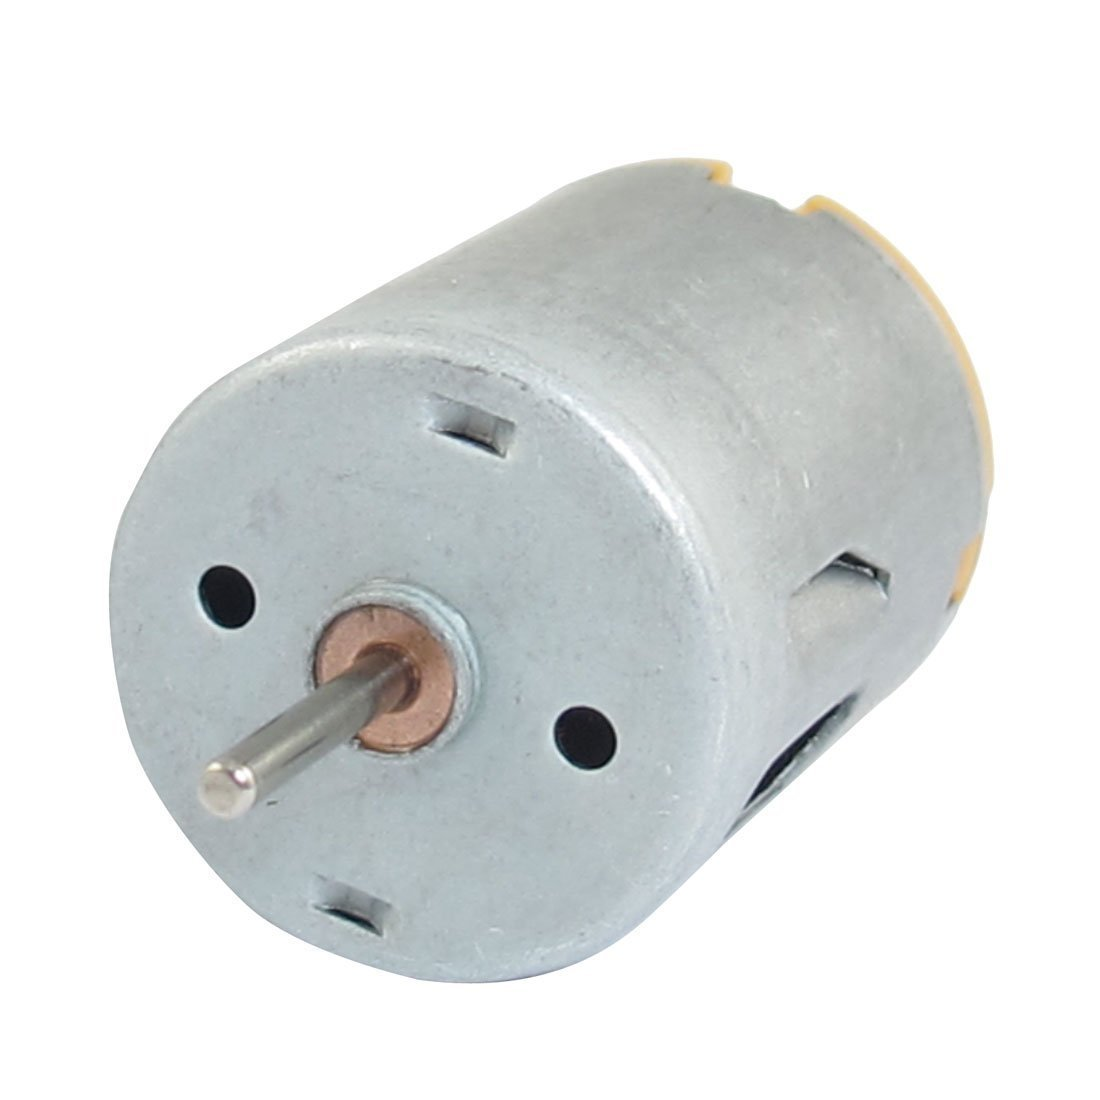 DC Motor - SODIAL(R) 8000RPM 9V 68mA High Torque Magnetic Cylindrical Mini DC Motor Silver